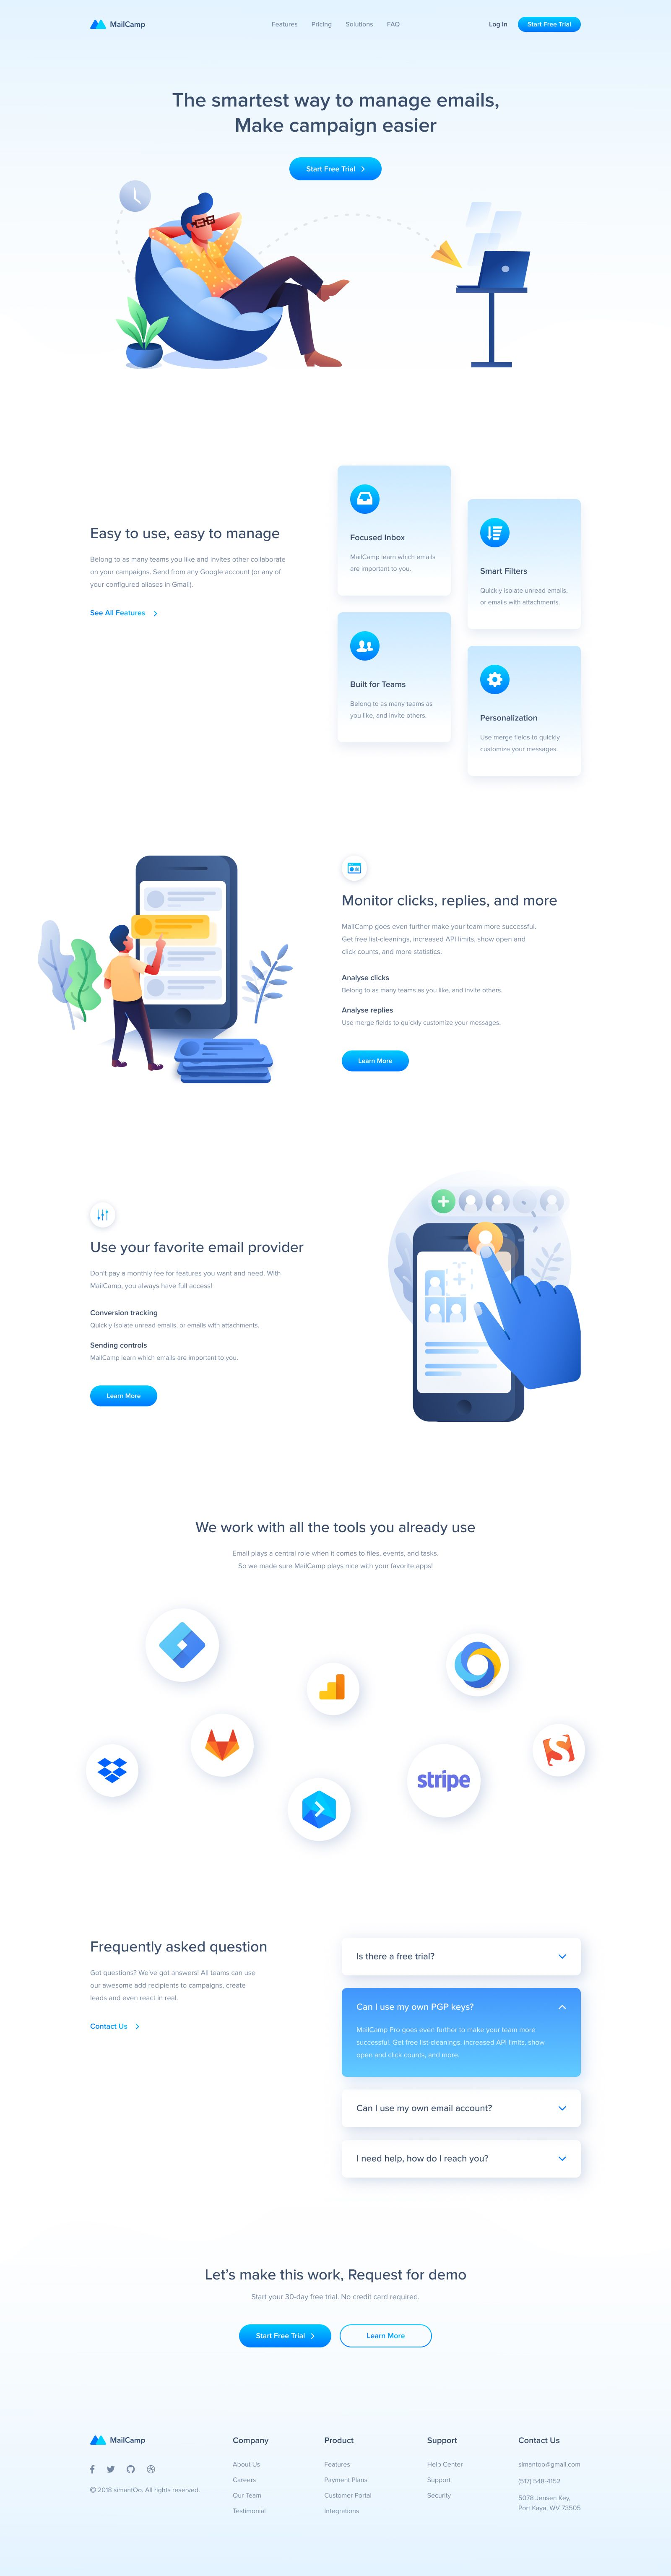 Mailcamp Email Marketing Landing Page In 2020 Landing Page Web Design Page Design